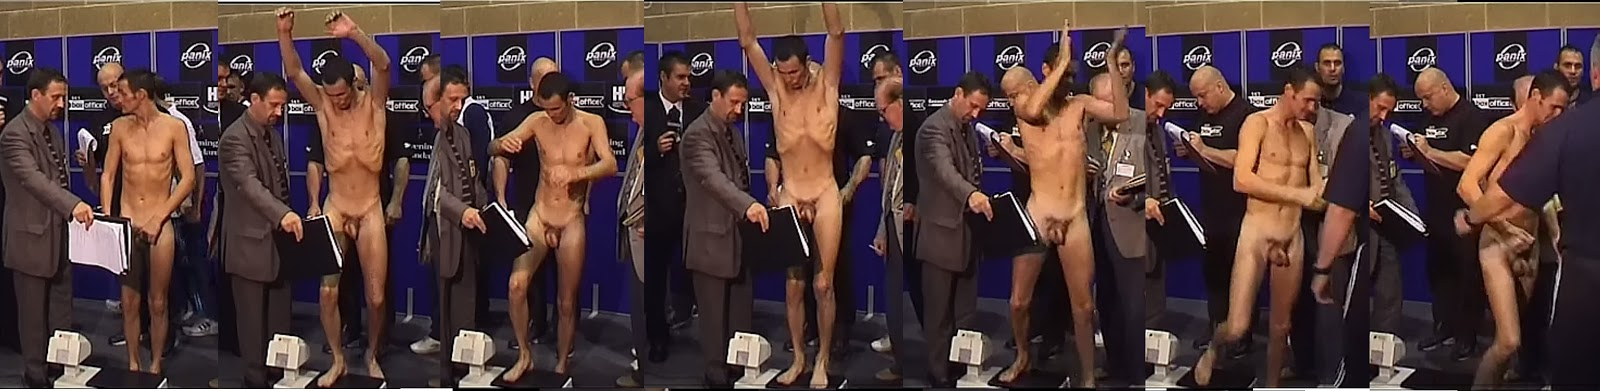 Naked Weigh In Video 117